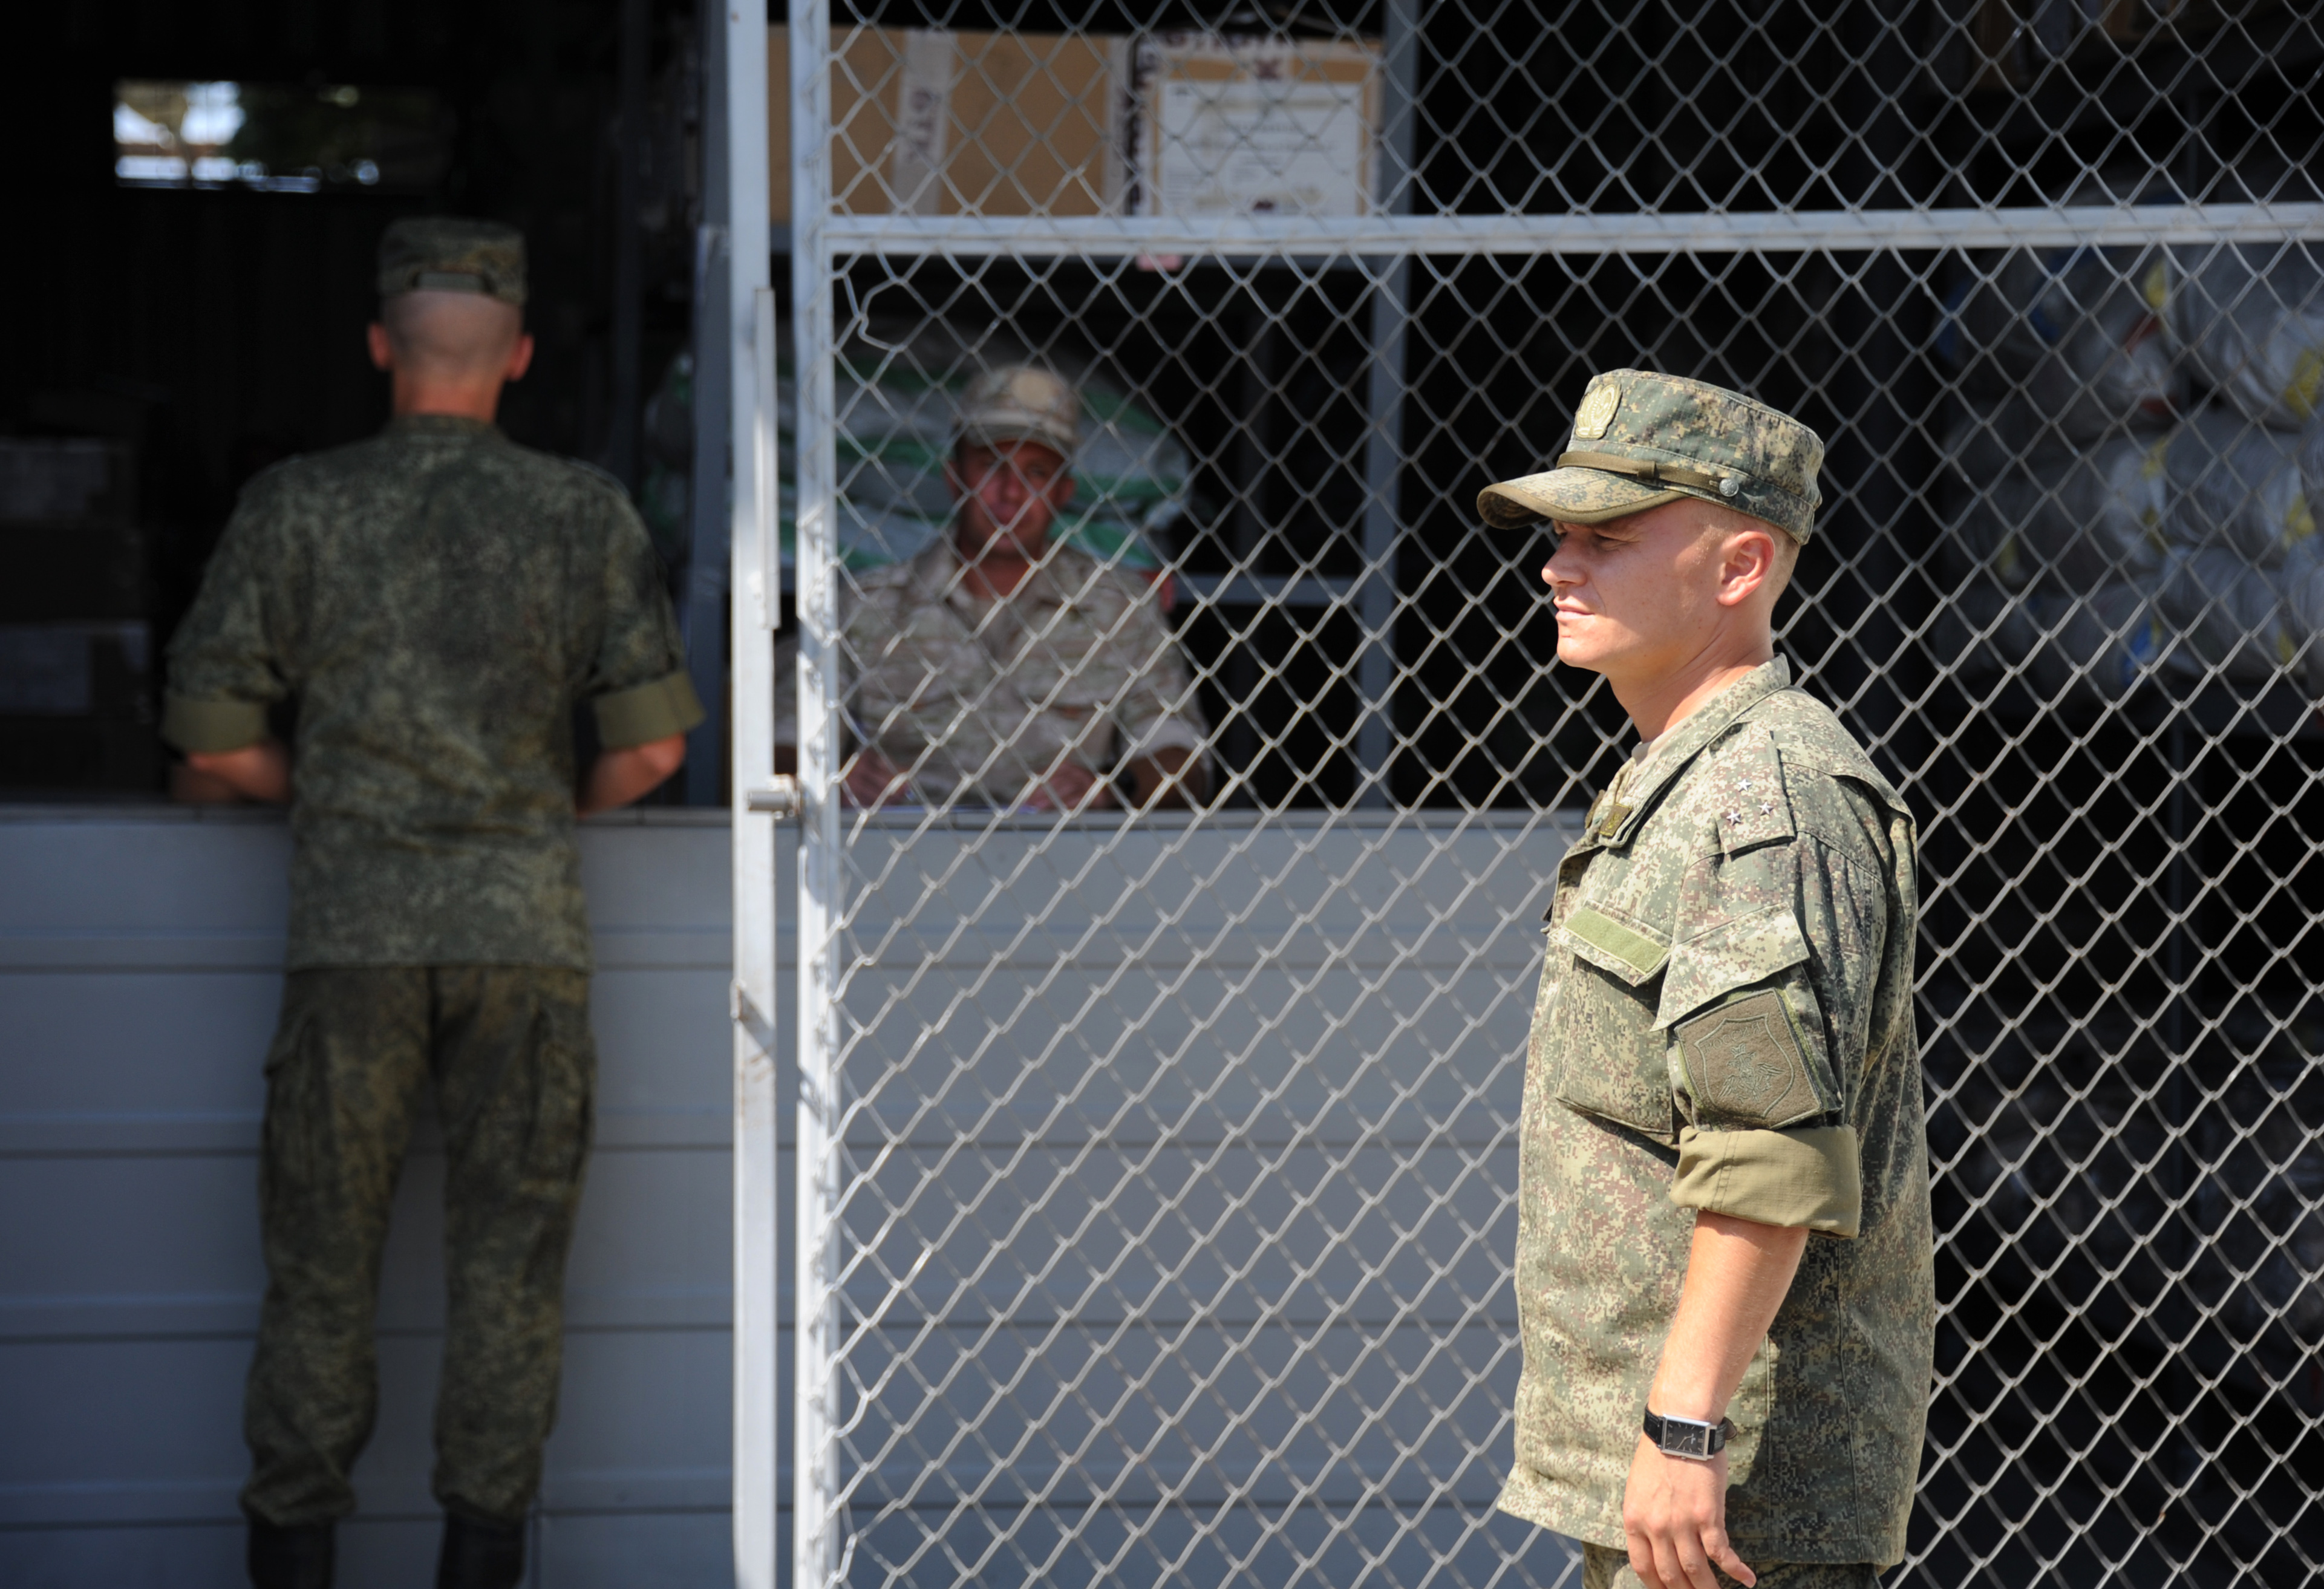 Newly arrived Russian soldiers collect their gear at the Russian military base of Hmeimim, located south-east of the city of Latakia in Hmeimim, Latakia Governorate, Syria, on September 26, 2019. - With military backing from Russia, President Bashar al-Assad's forces have retaken large parts of Syria from rebels and jihadists since 2015, and now control around 60 percent of the country. Russia often refers to troops it deployed in Syria as military advisers even though its forces and warplanes are also directly involved in battles against jihadists and other rebels (Photo by Maxime POPOV / AFP) (Photo credit should read MAXIME POPOV/AFP/Getty Images)